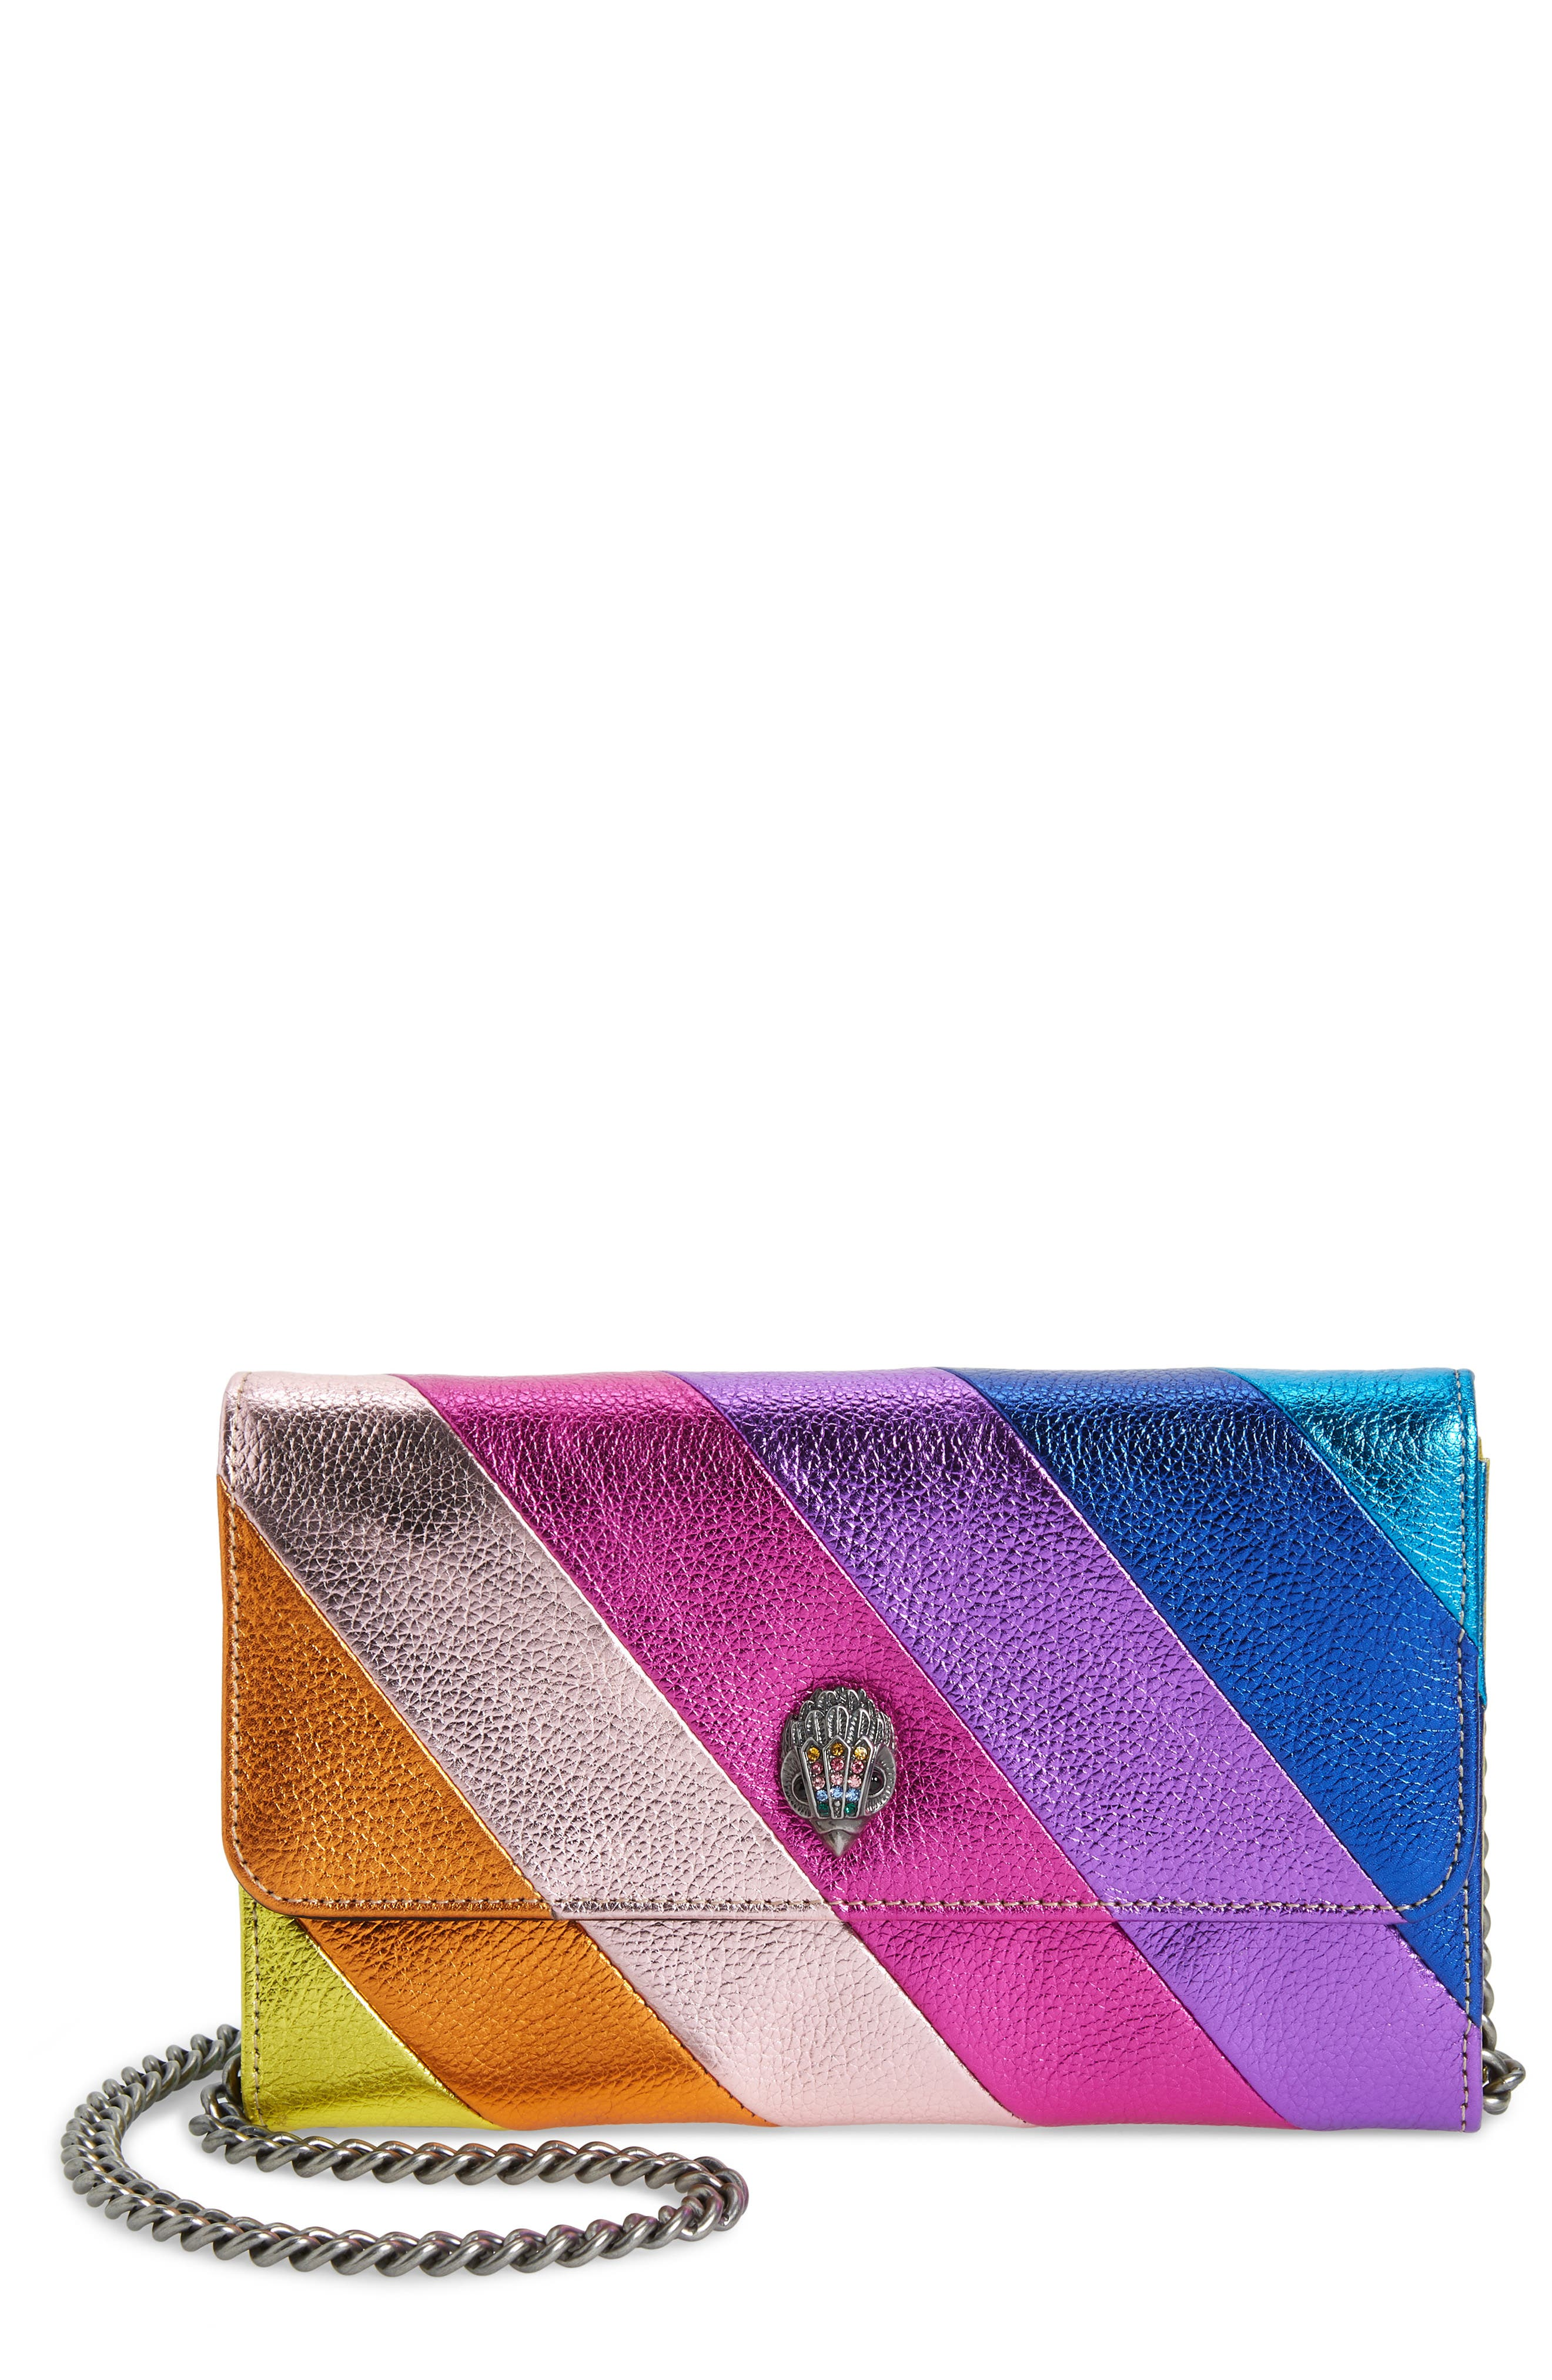 Stripe Leather Chain Wallet,                             Main thumbnail 1, color,                             MULTI/ OTHER